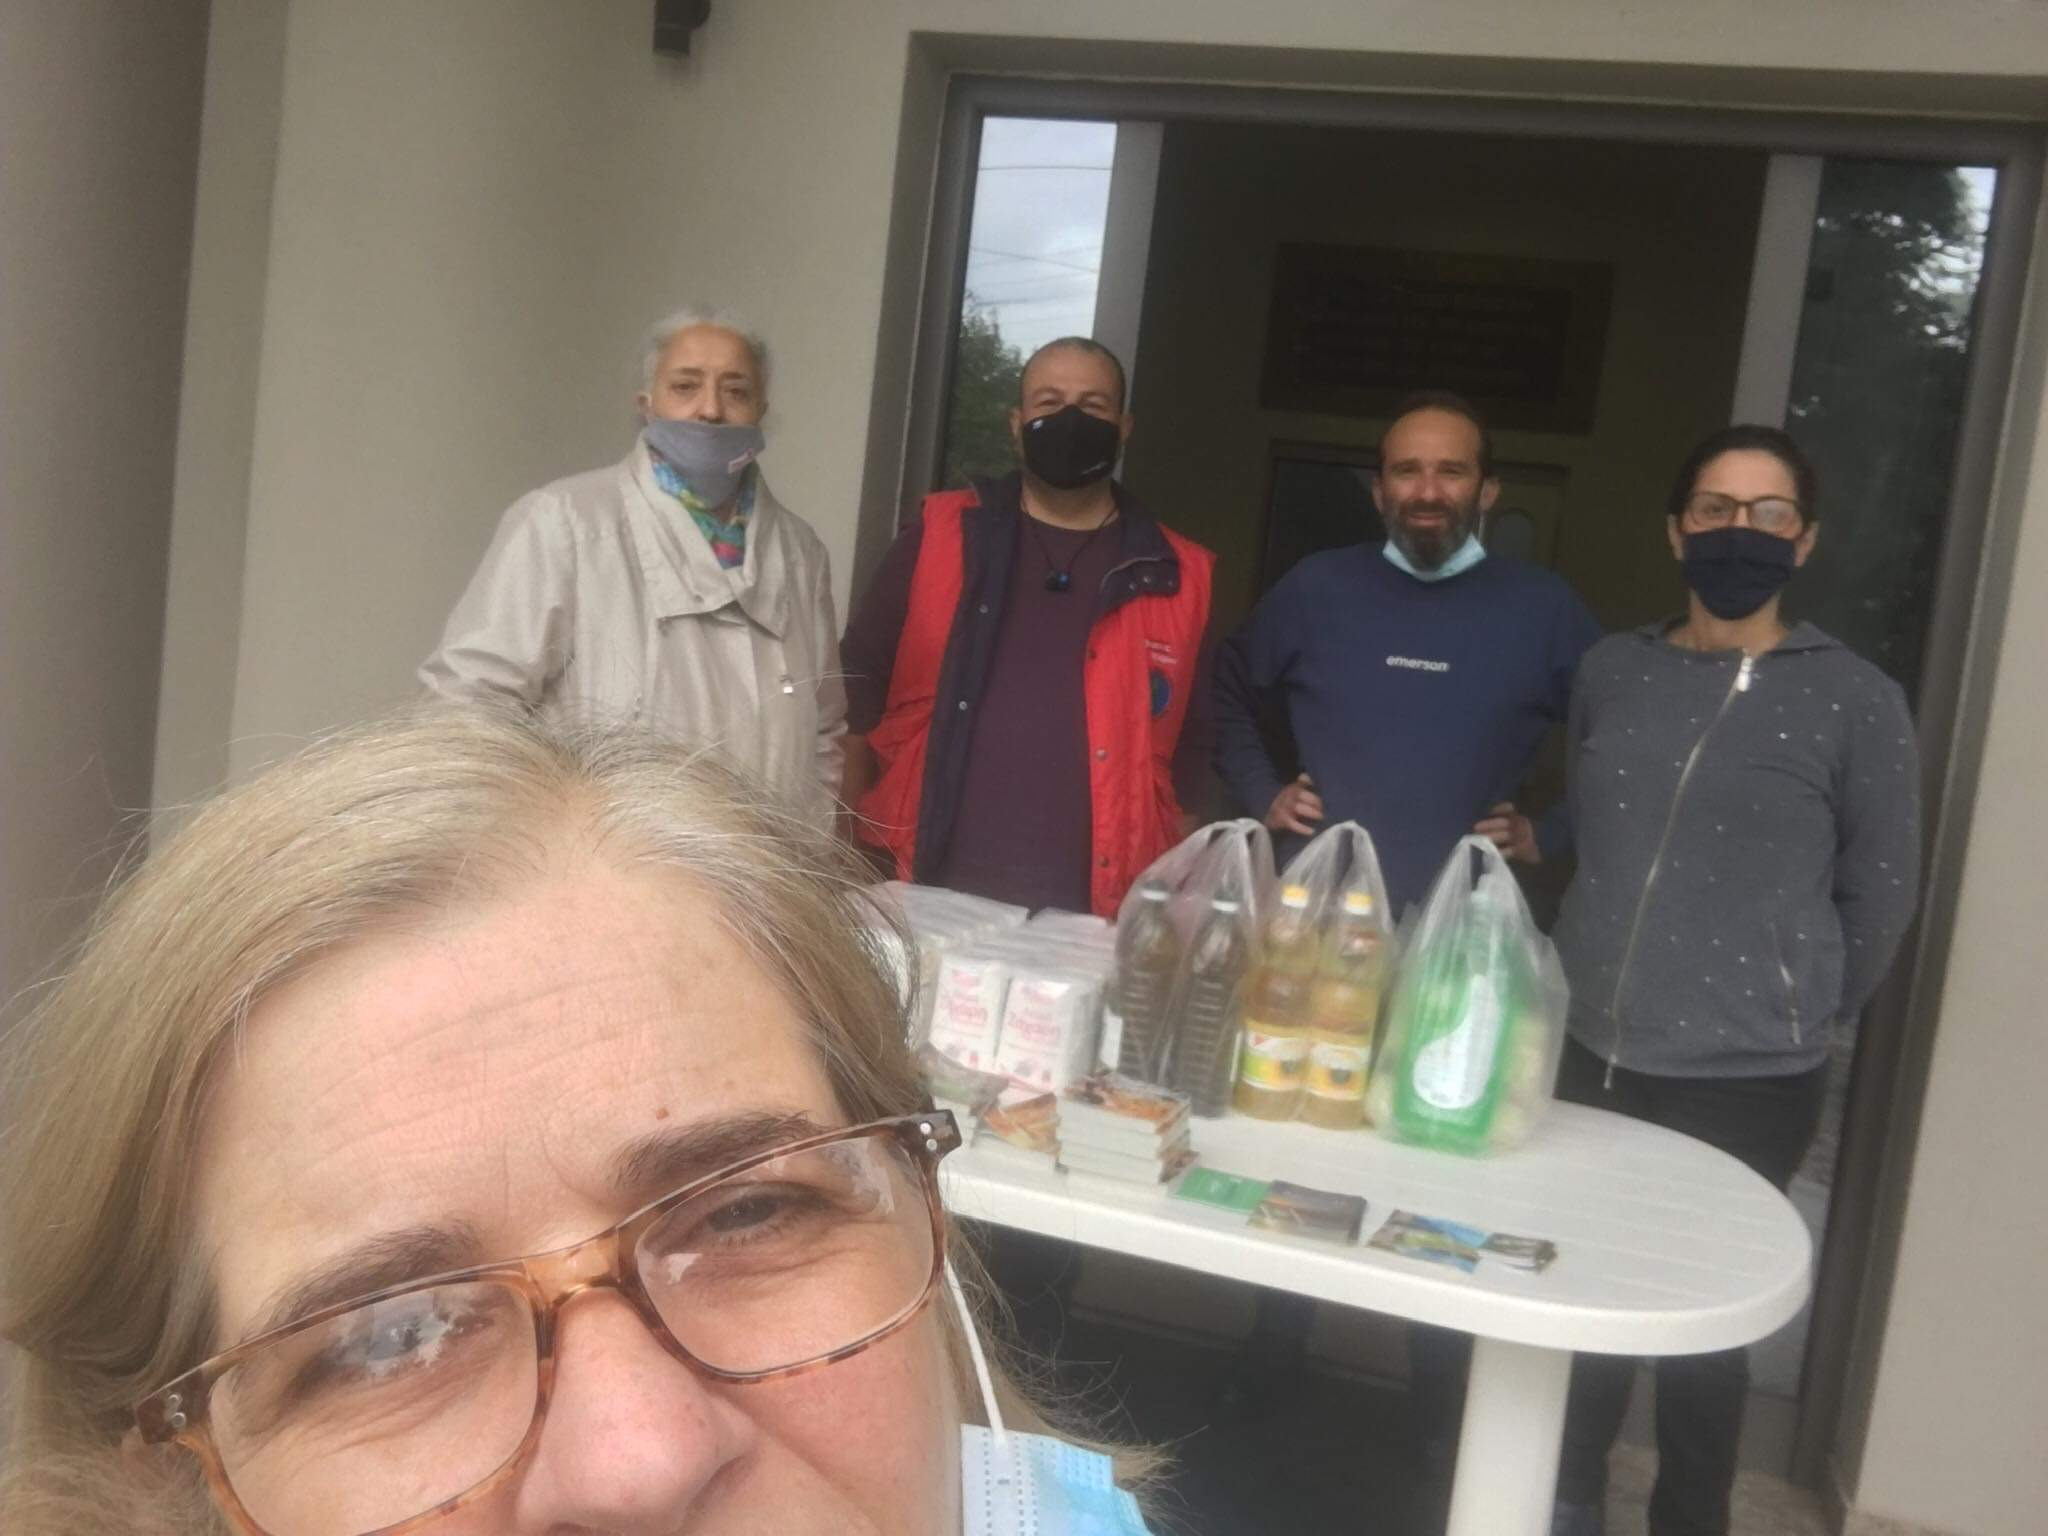 The compassionate staff at Perichoresis gathers to organizes food deliveries.